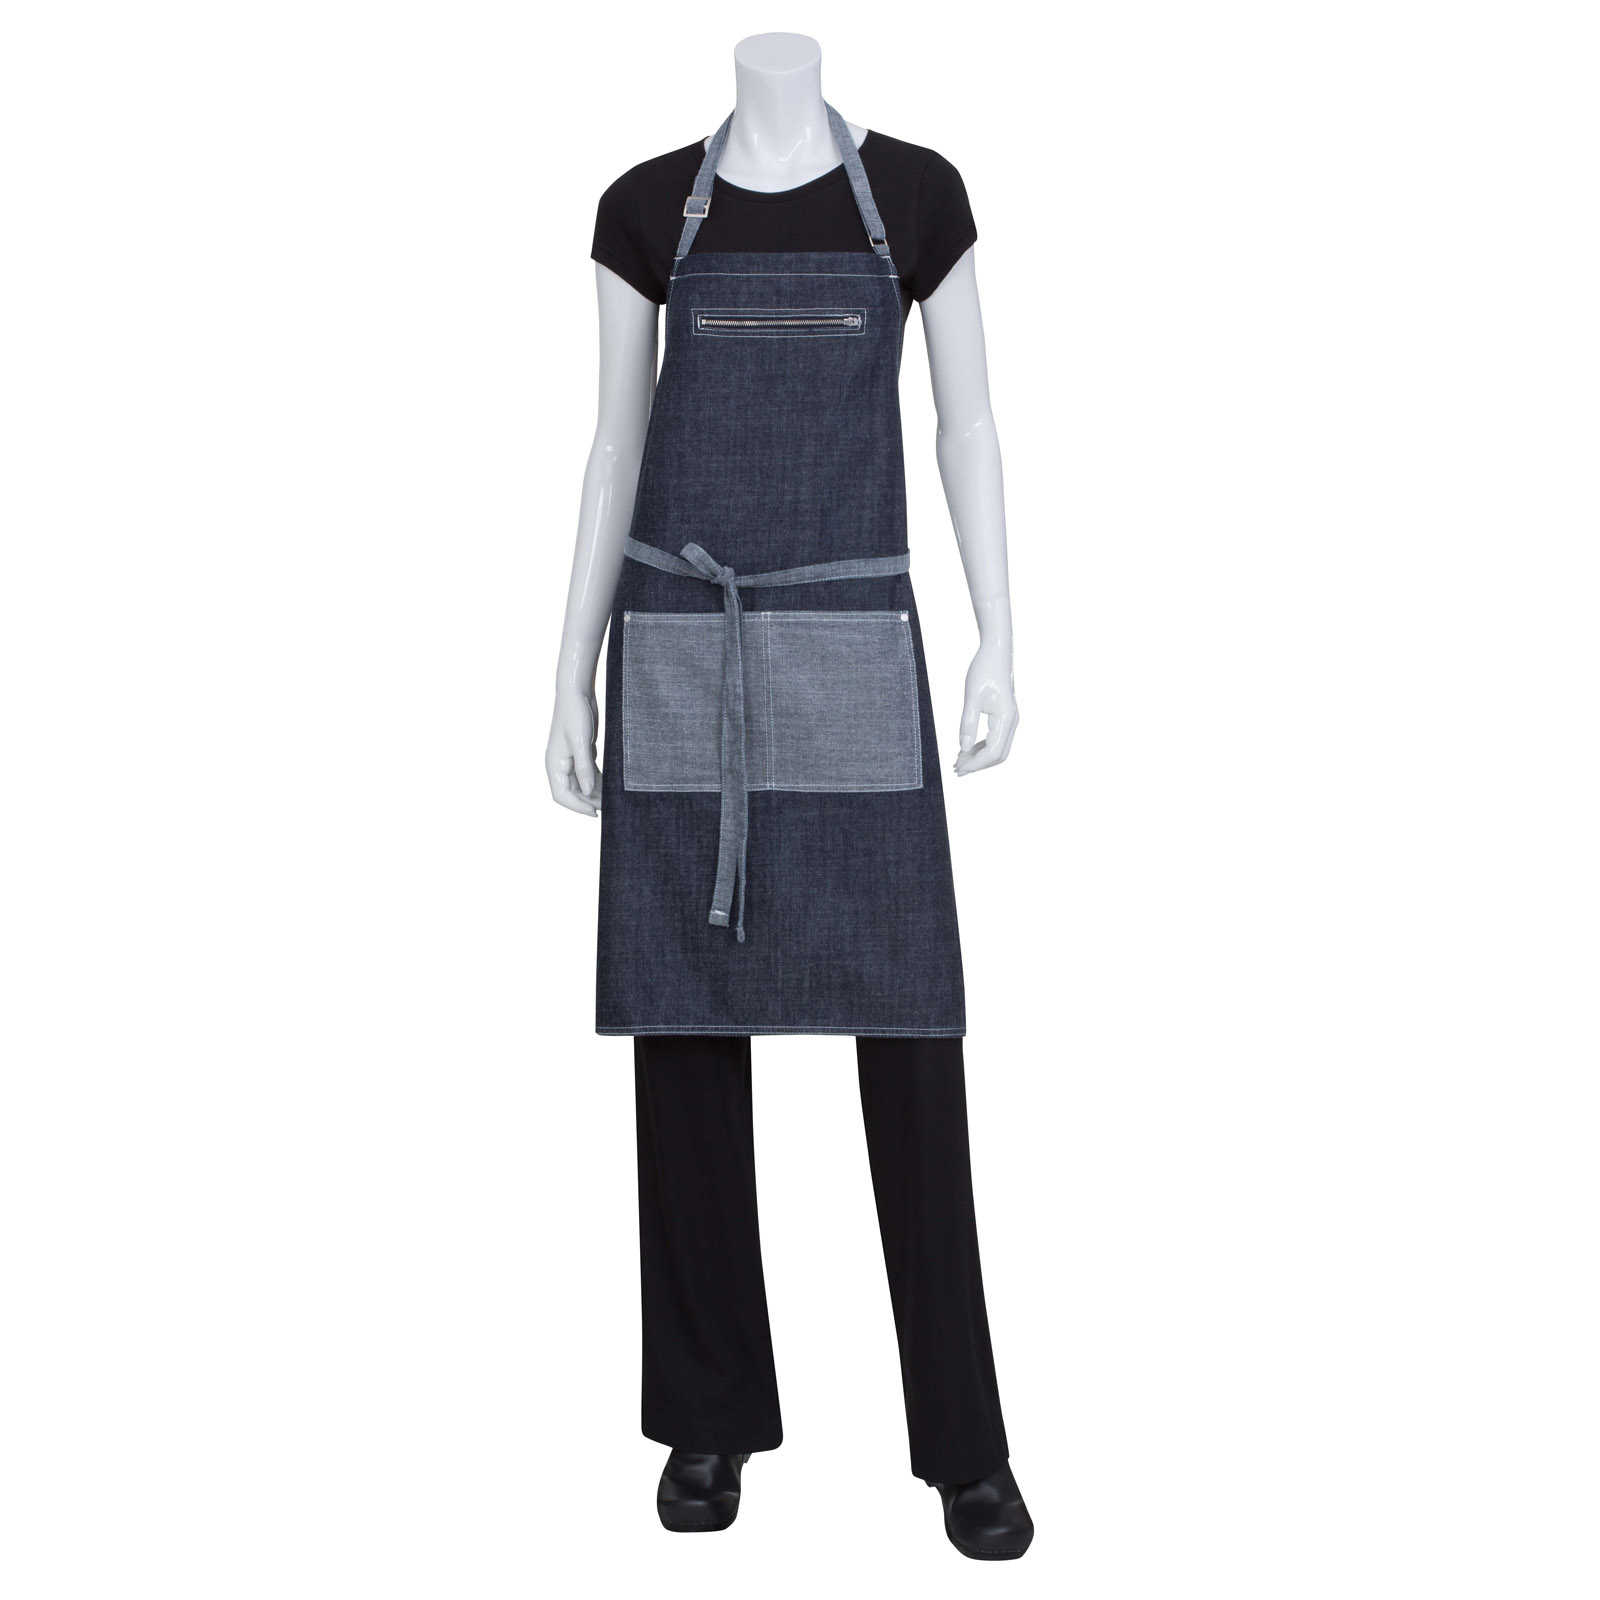 Chef Works AB034IBL0 bib apron